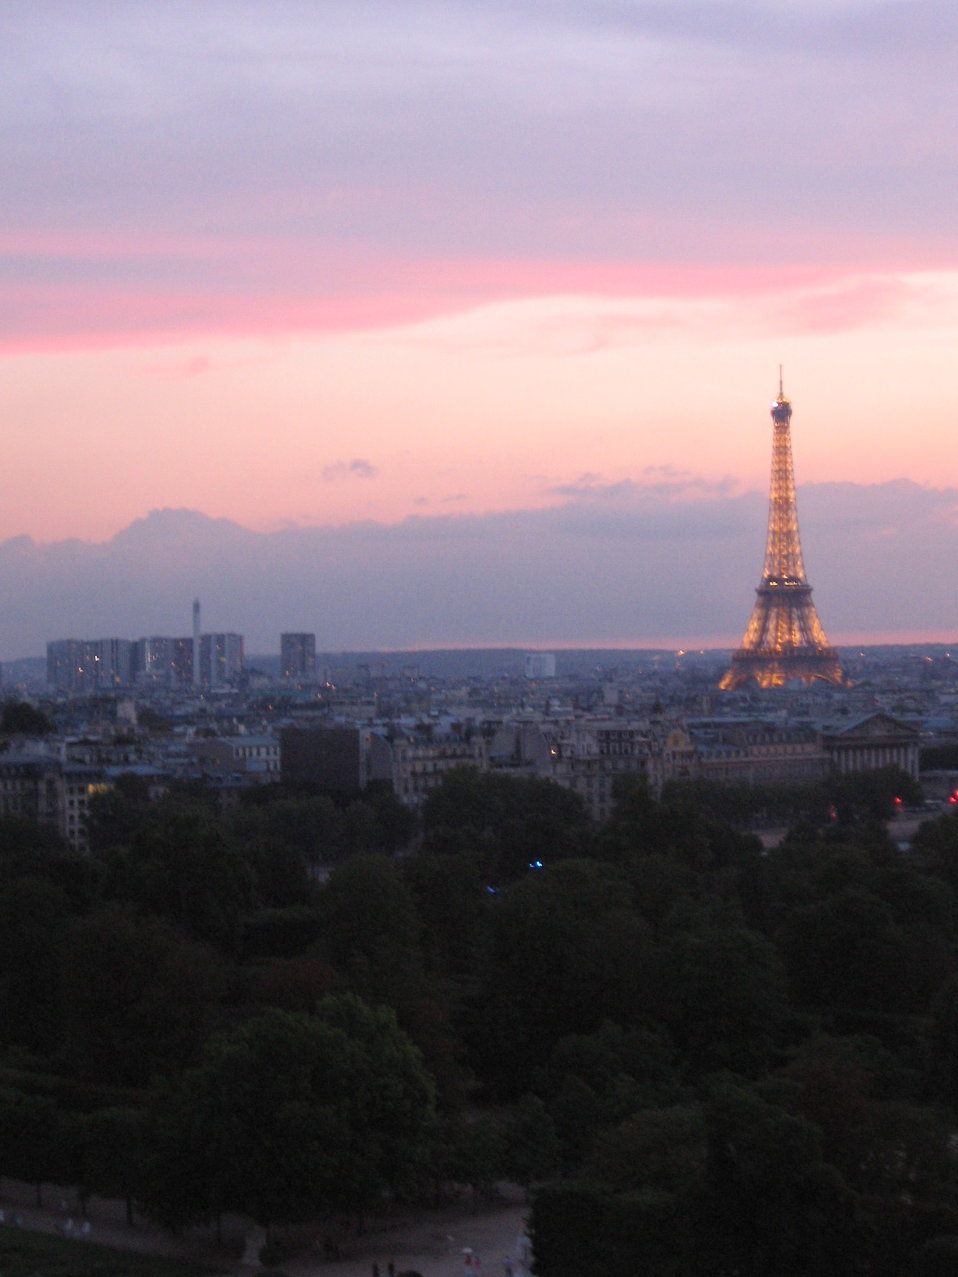 The Eiffel Tower at sunset : Free Stock Photo